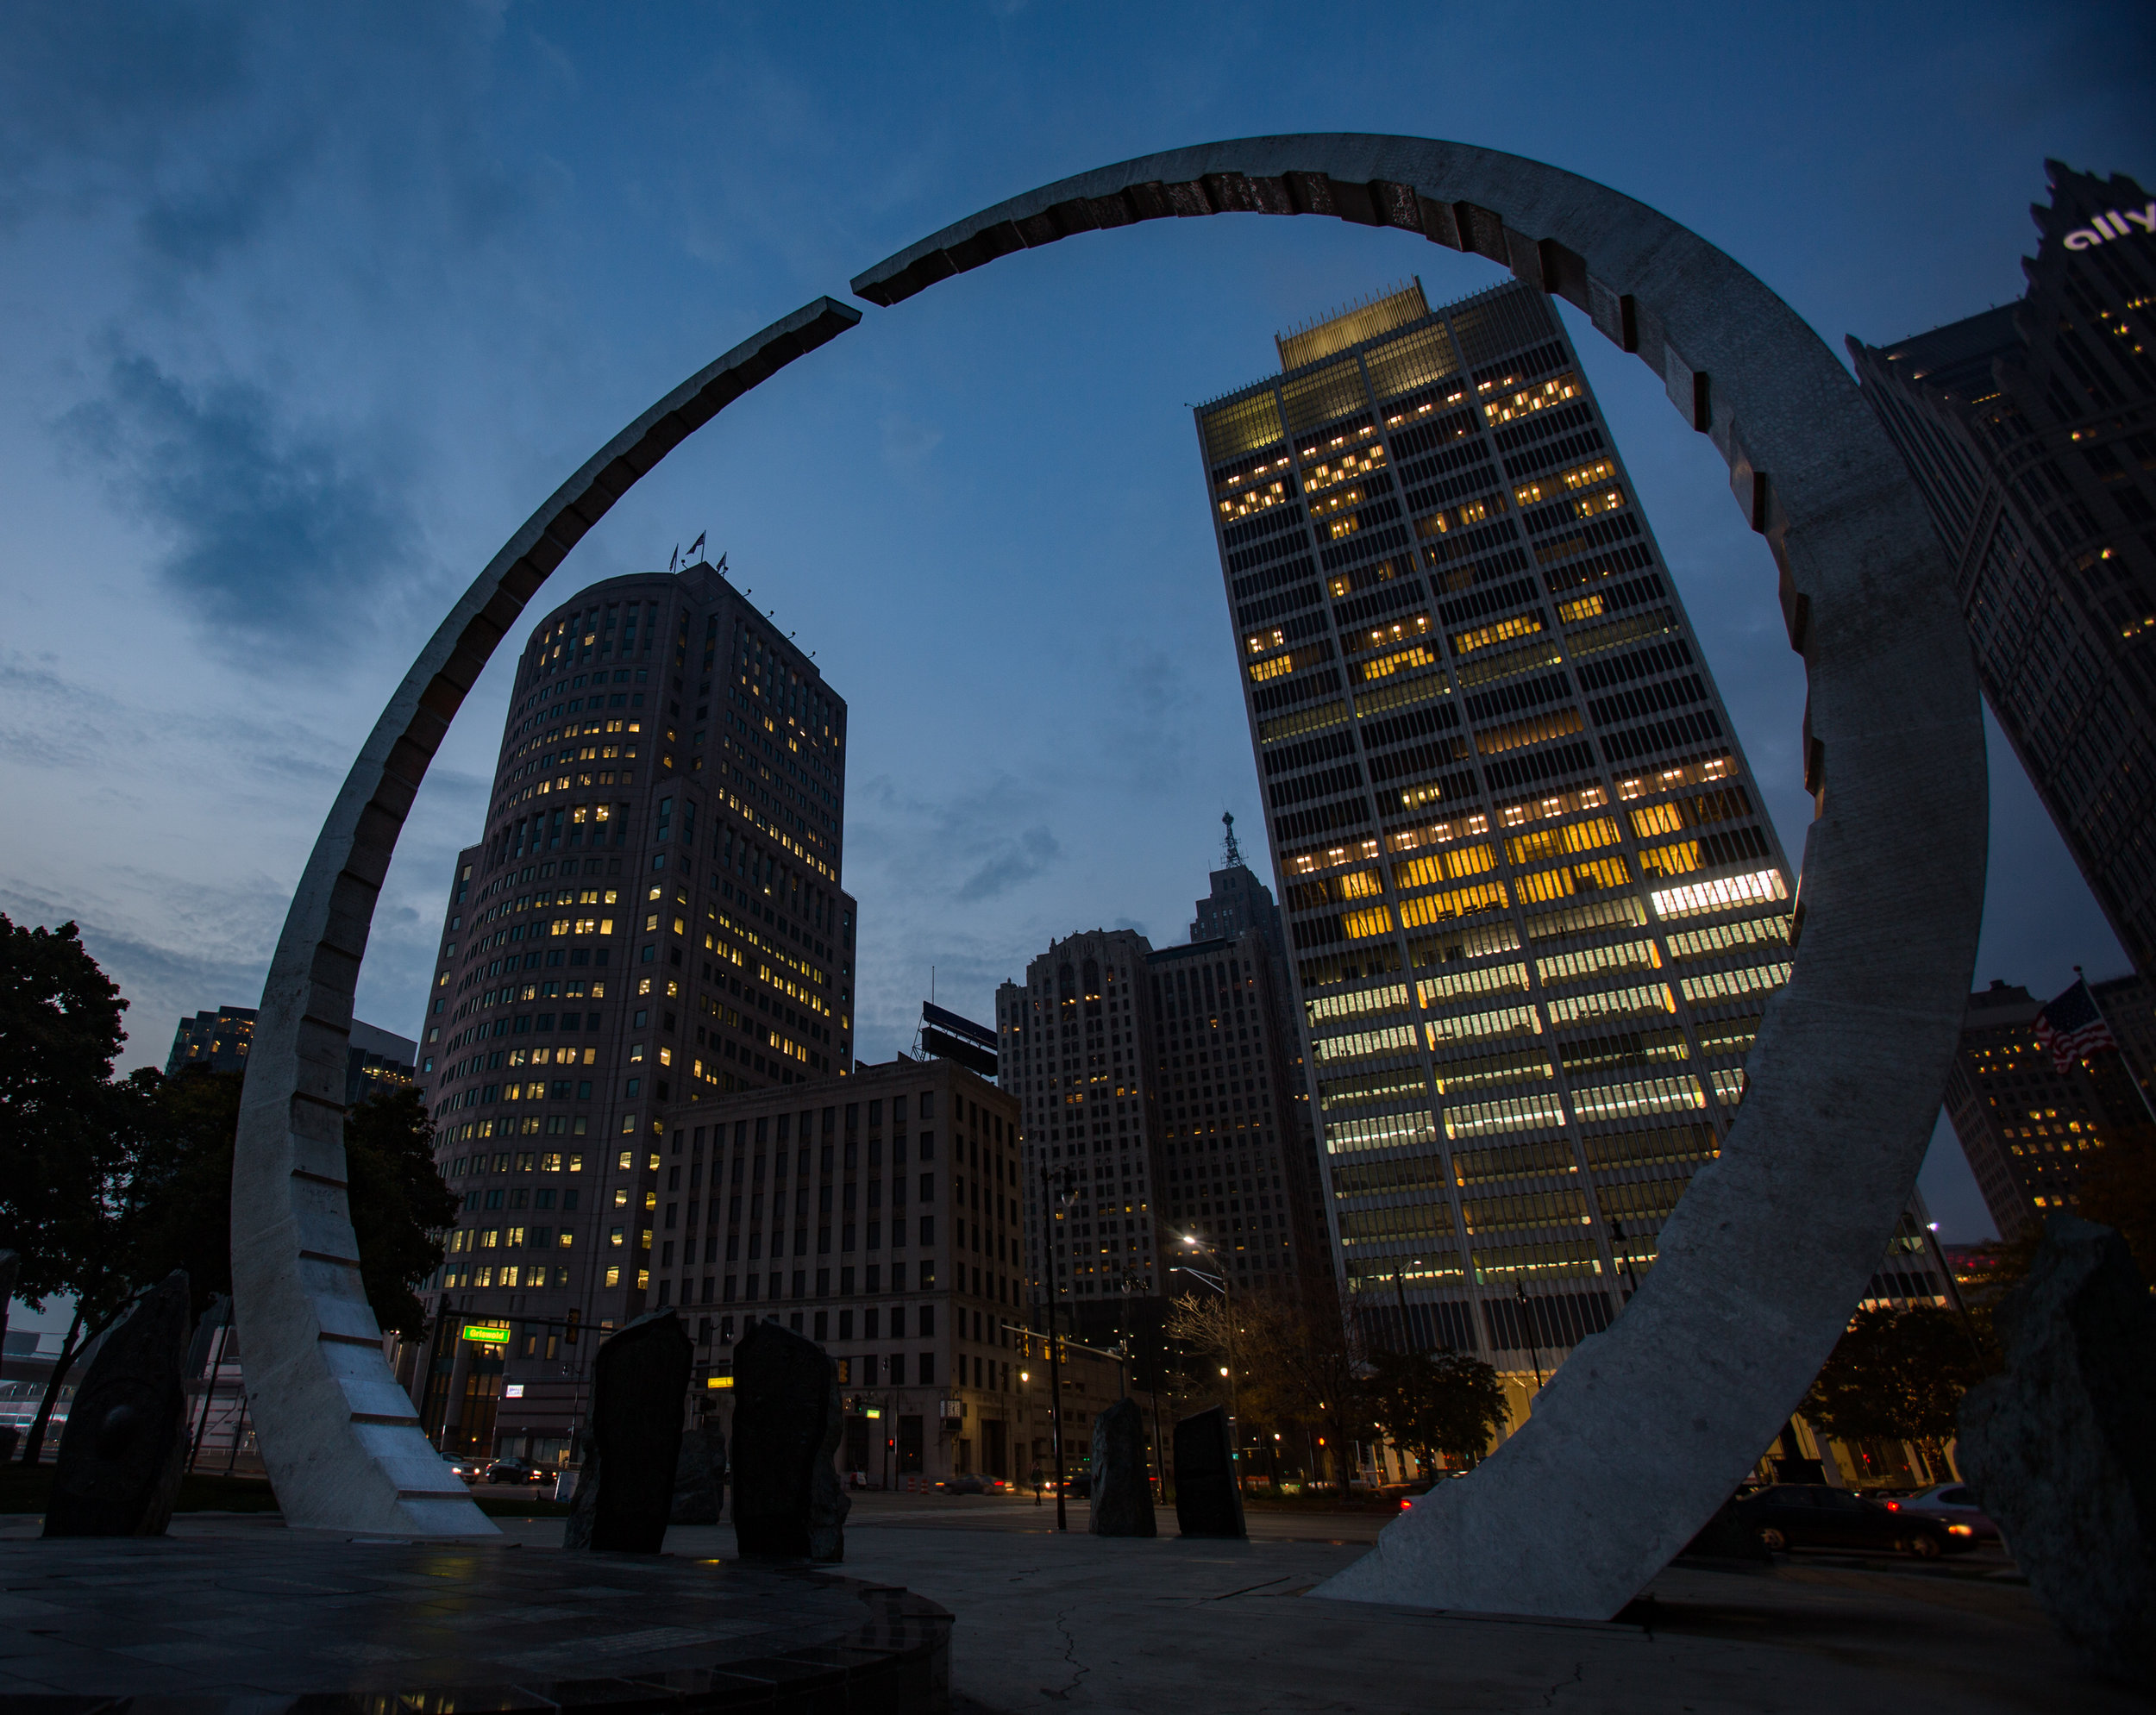 The Transcending sculpture in Hart Plaza in Detroit photographed on Wednesday, Nov. 2, 2016.